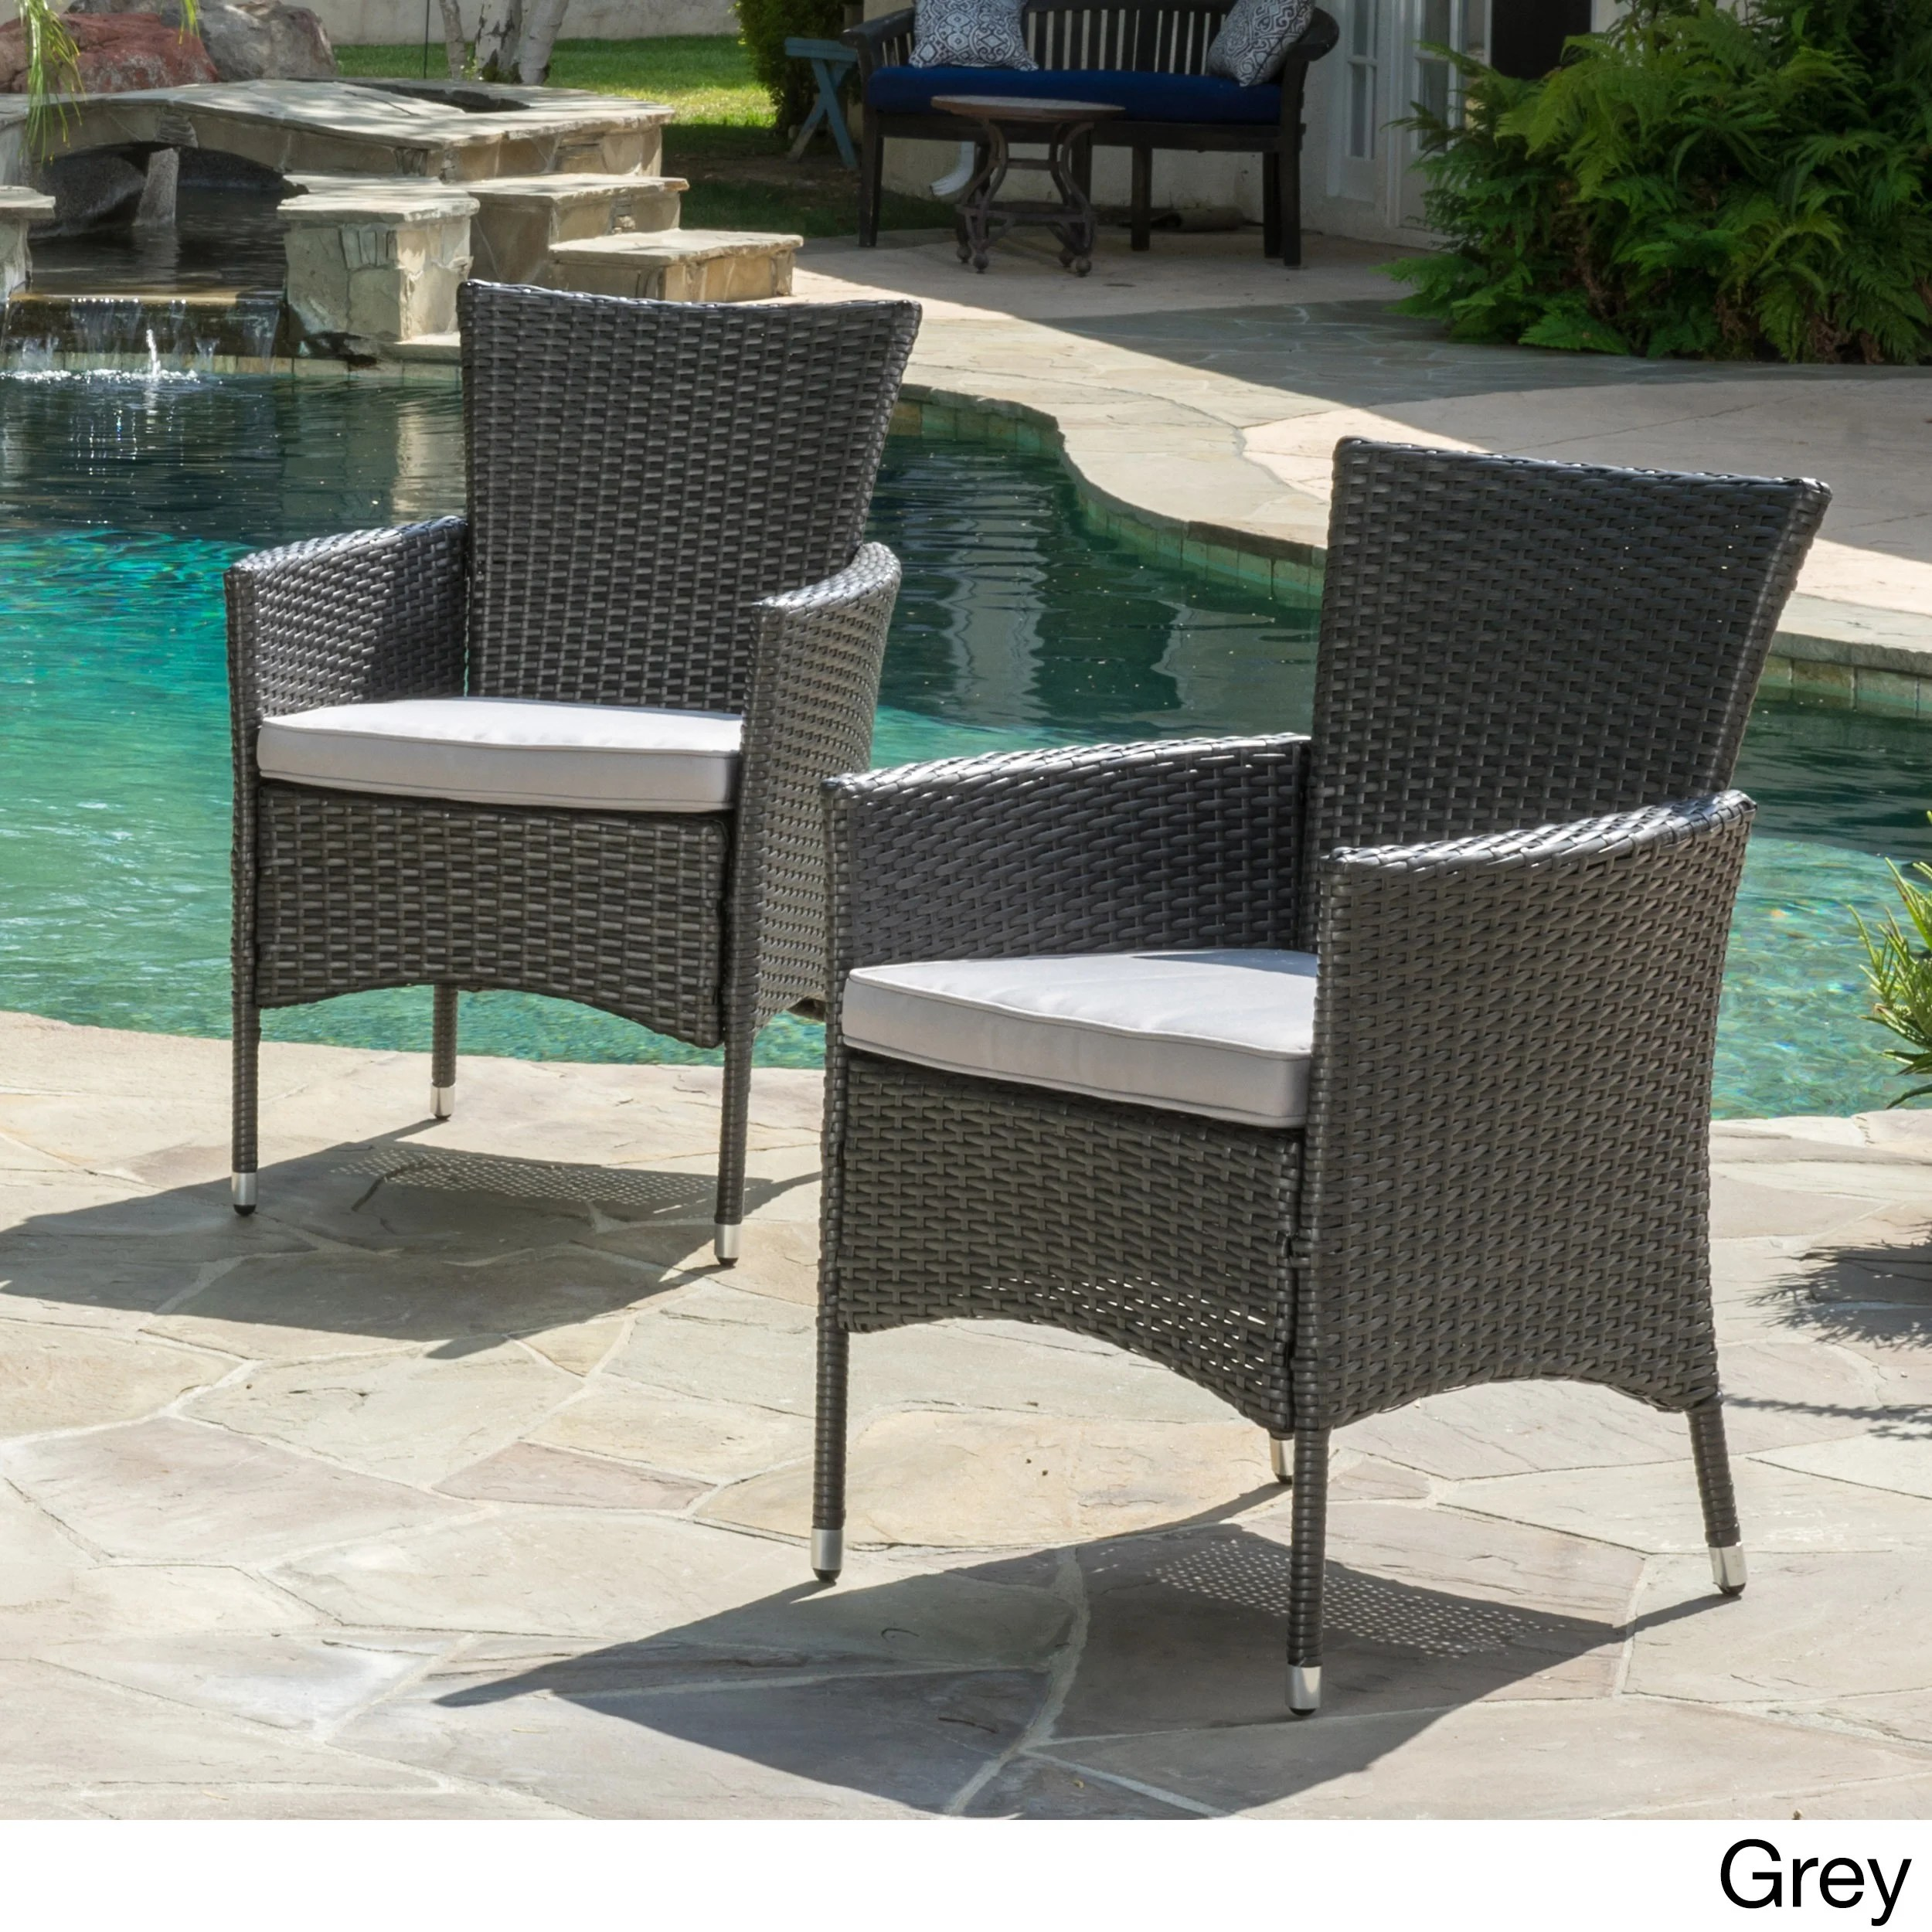 wicker patio chair set of 2 gray side malta outdoor dining with cushion